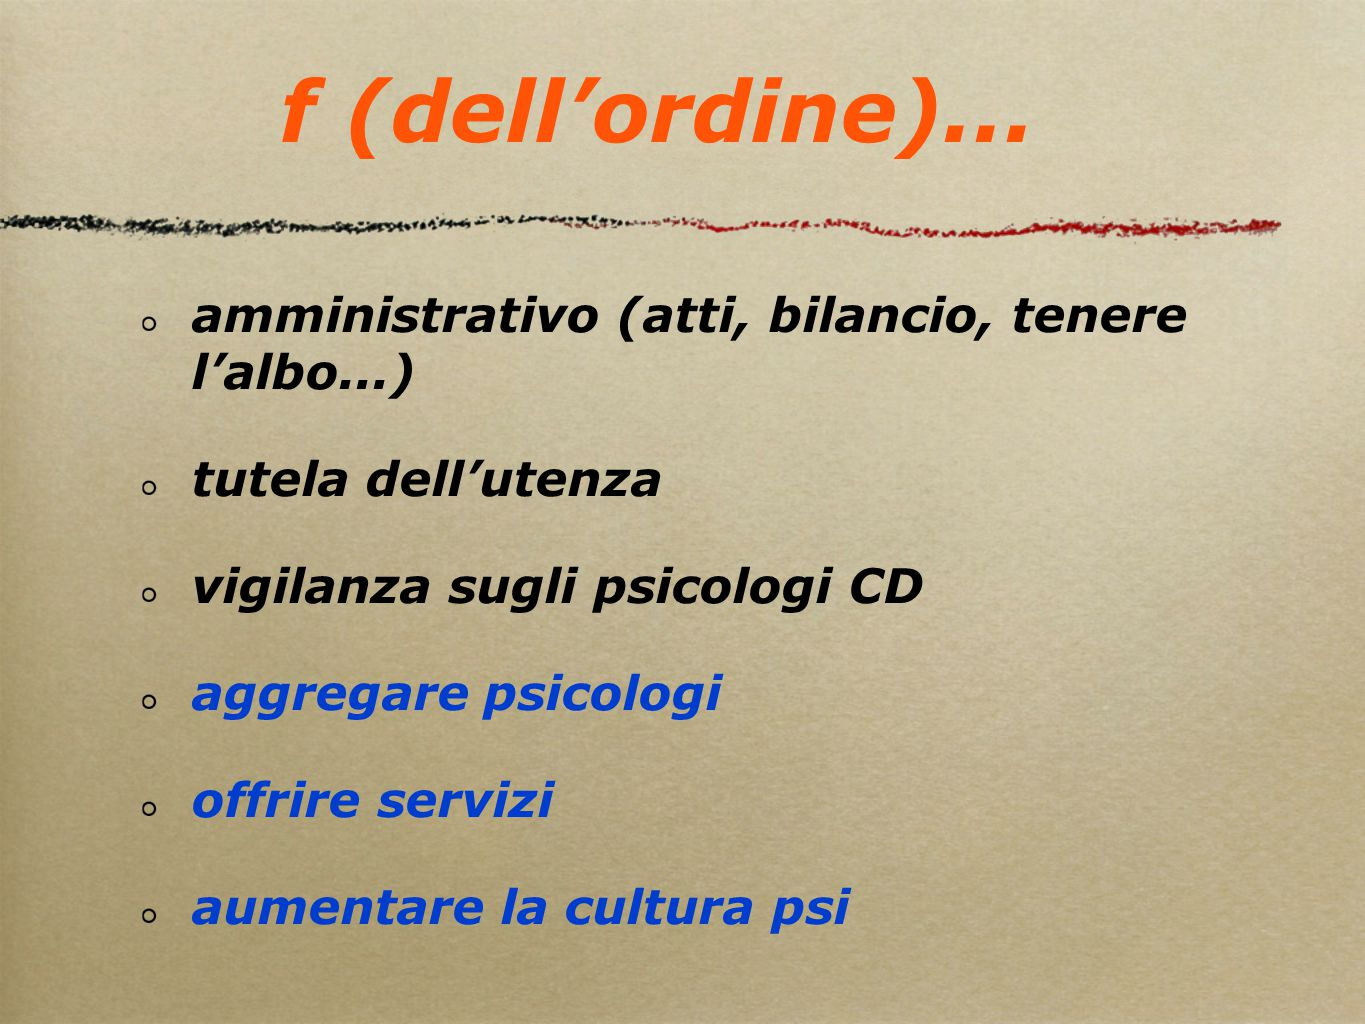 f (dell'ordine)...